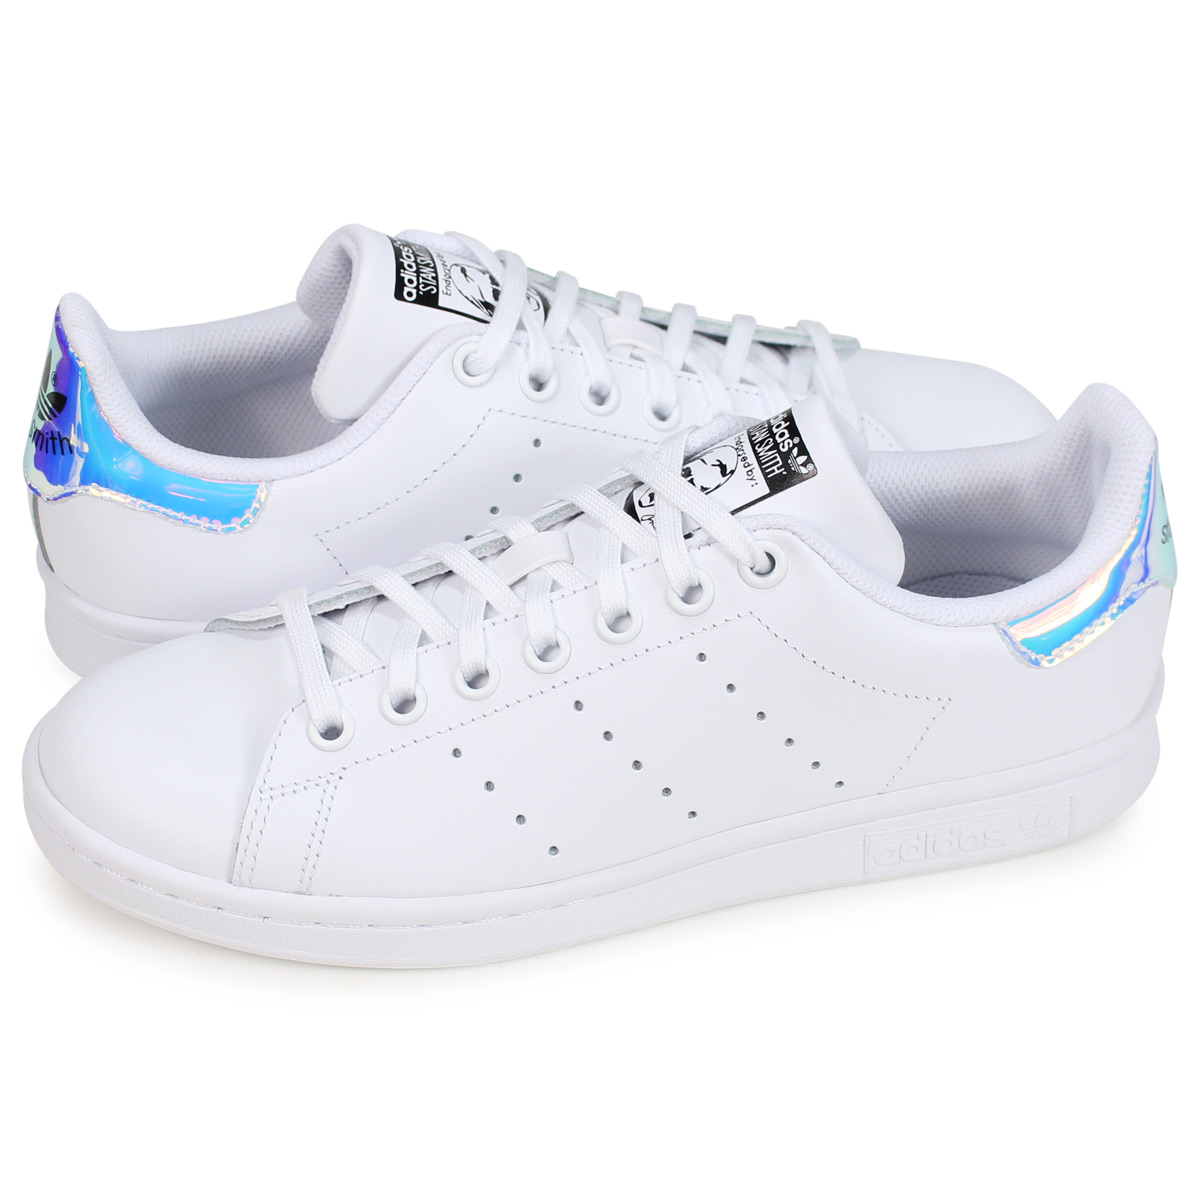 adidas Originals STAN SMITH J Adidas originals Stan Smith sneakers Lady's white AQ6272